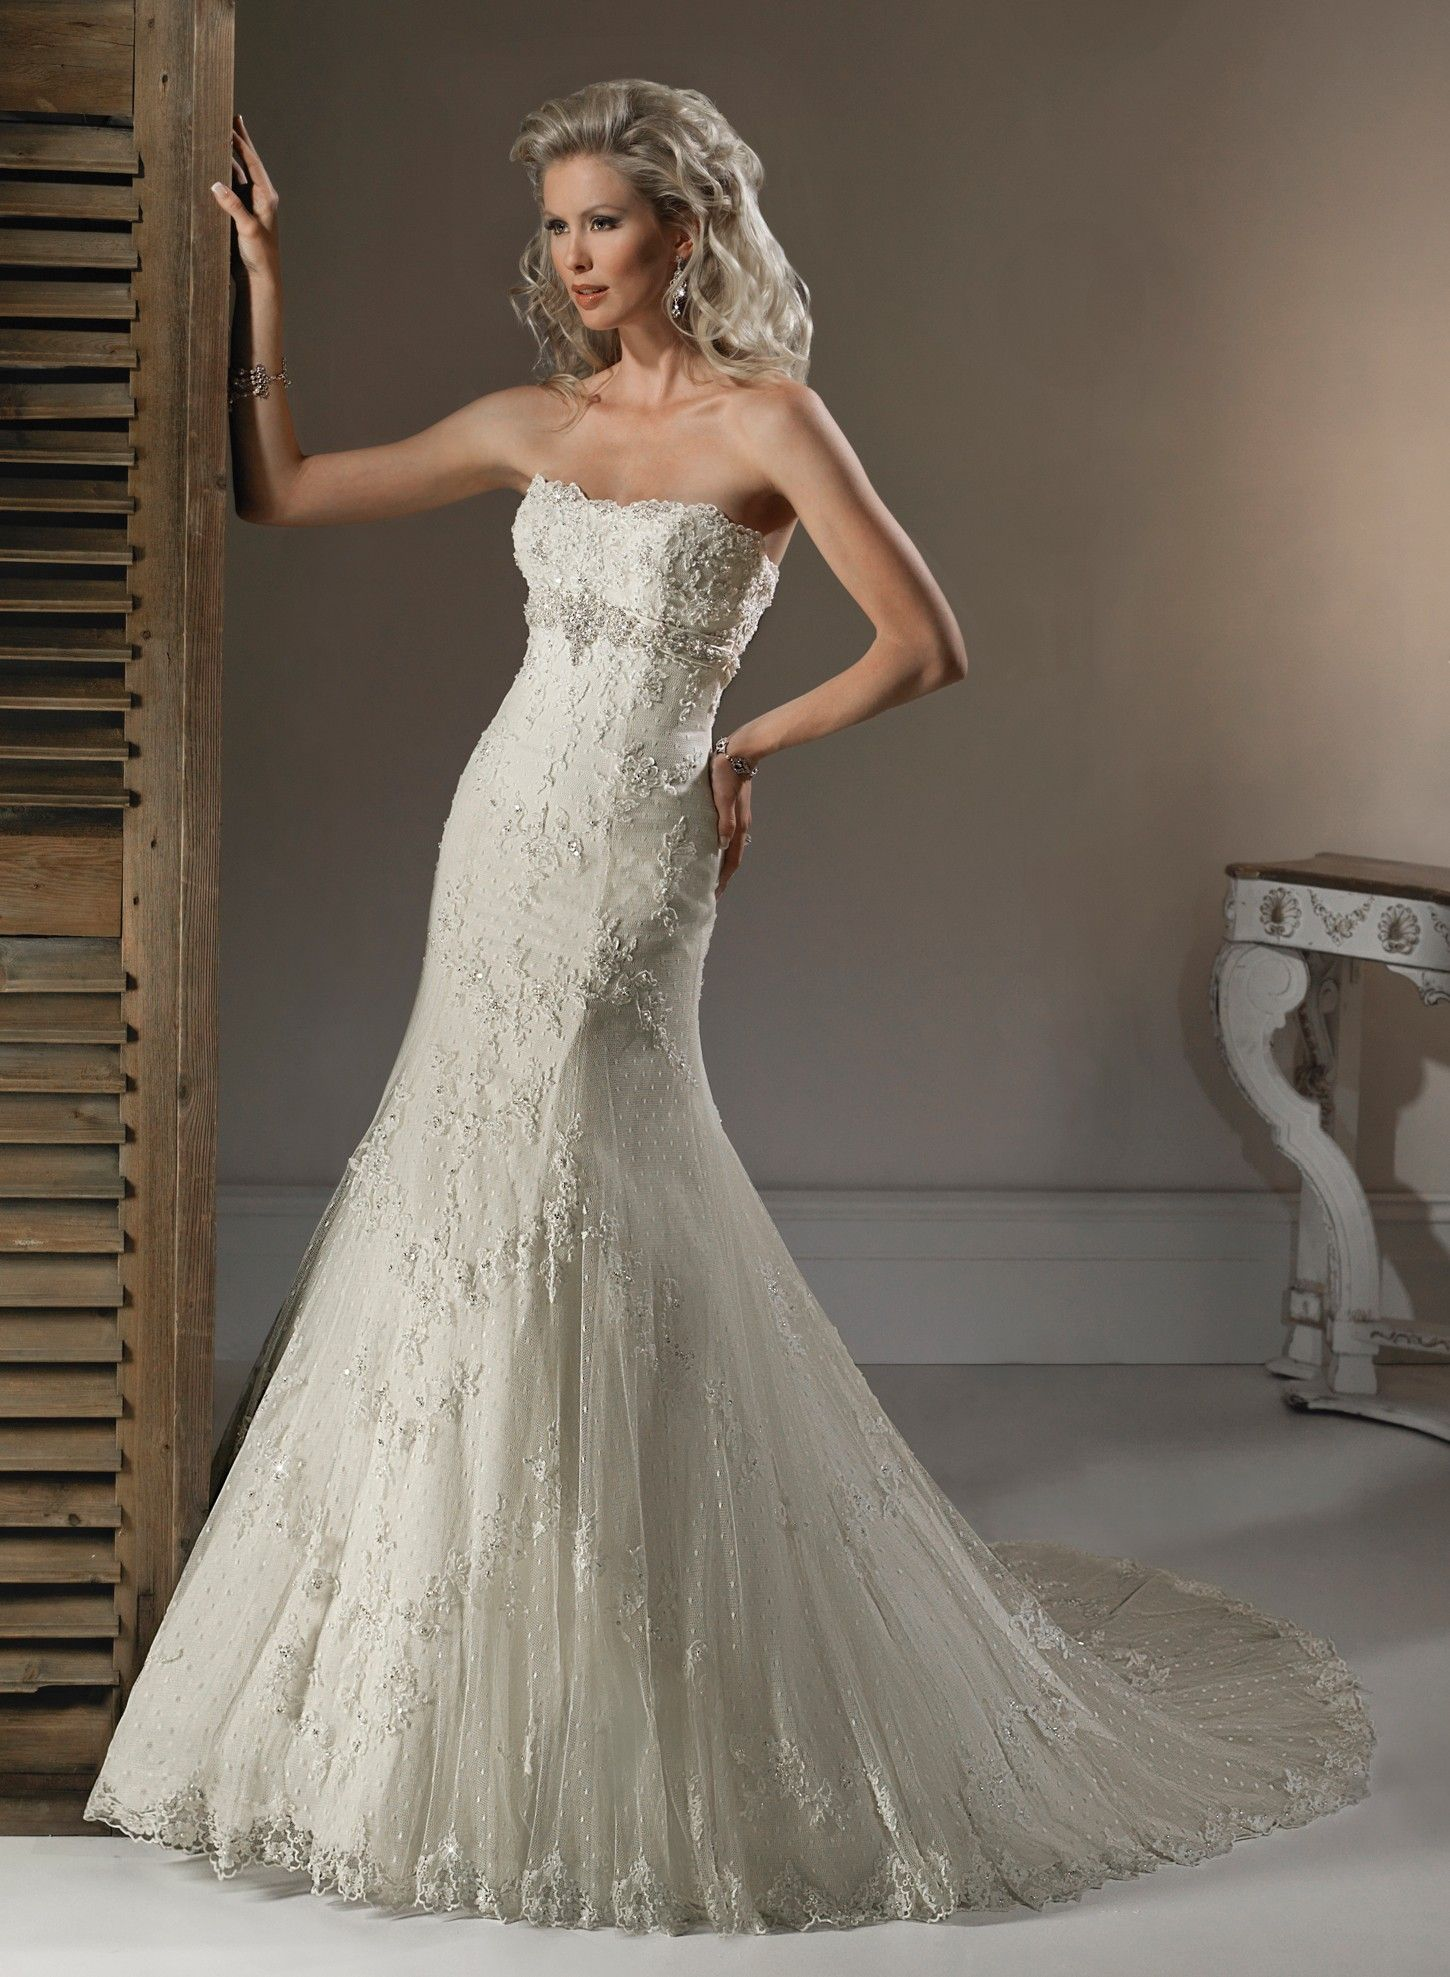 Wedding Lace A Line Wedding Dress spaghetti strap lace a line tulle sleeveless wedding dress 1000 images about dresses on pinterest one shoulder and lace